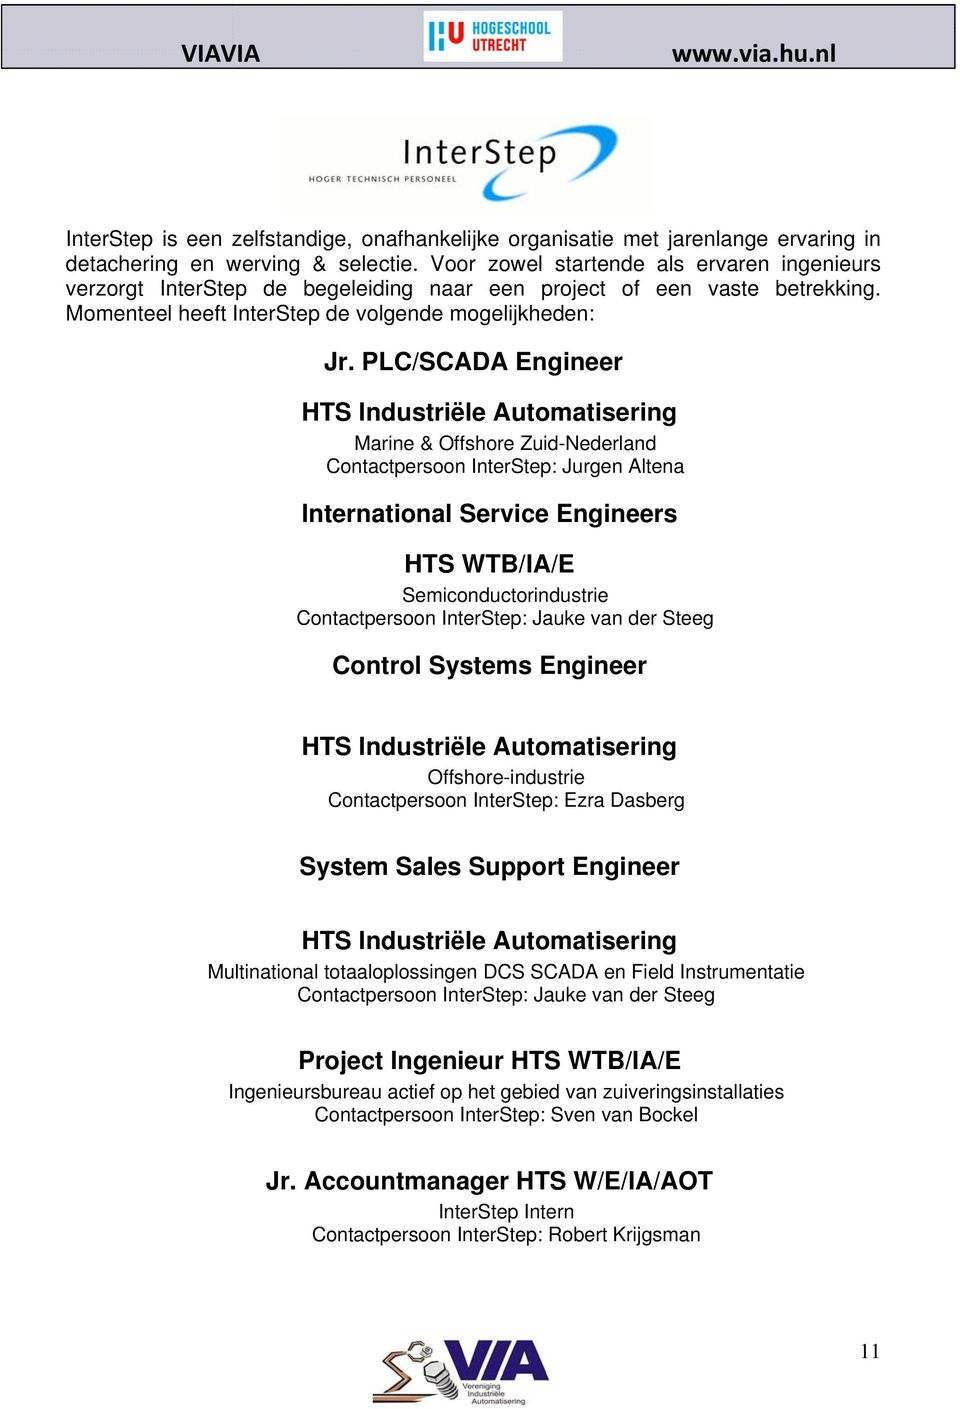 PLC/SCADA Engineer HTS Industriële Automatisering Marine & Offshore Zuid-Nederland Contactpersoon InterStep: Jurgen Altena International Service Engineers HTS WTB/IA/E Semiconductorindustrie